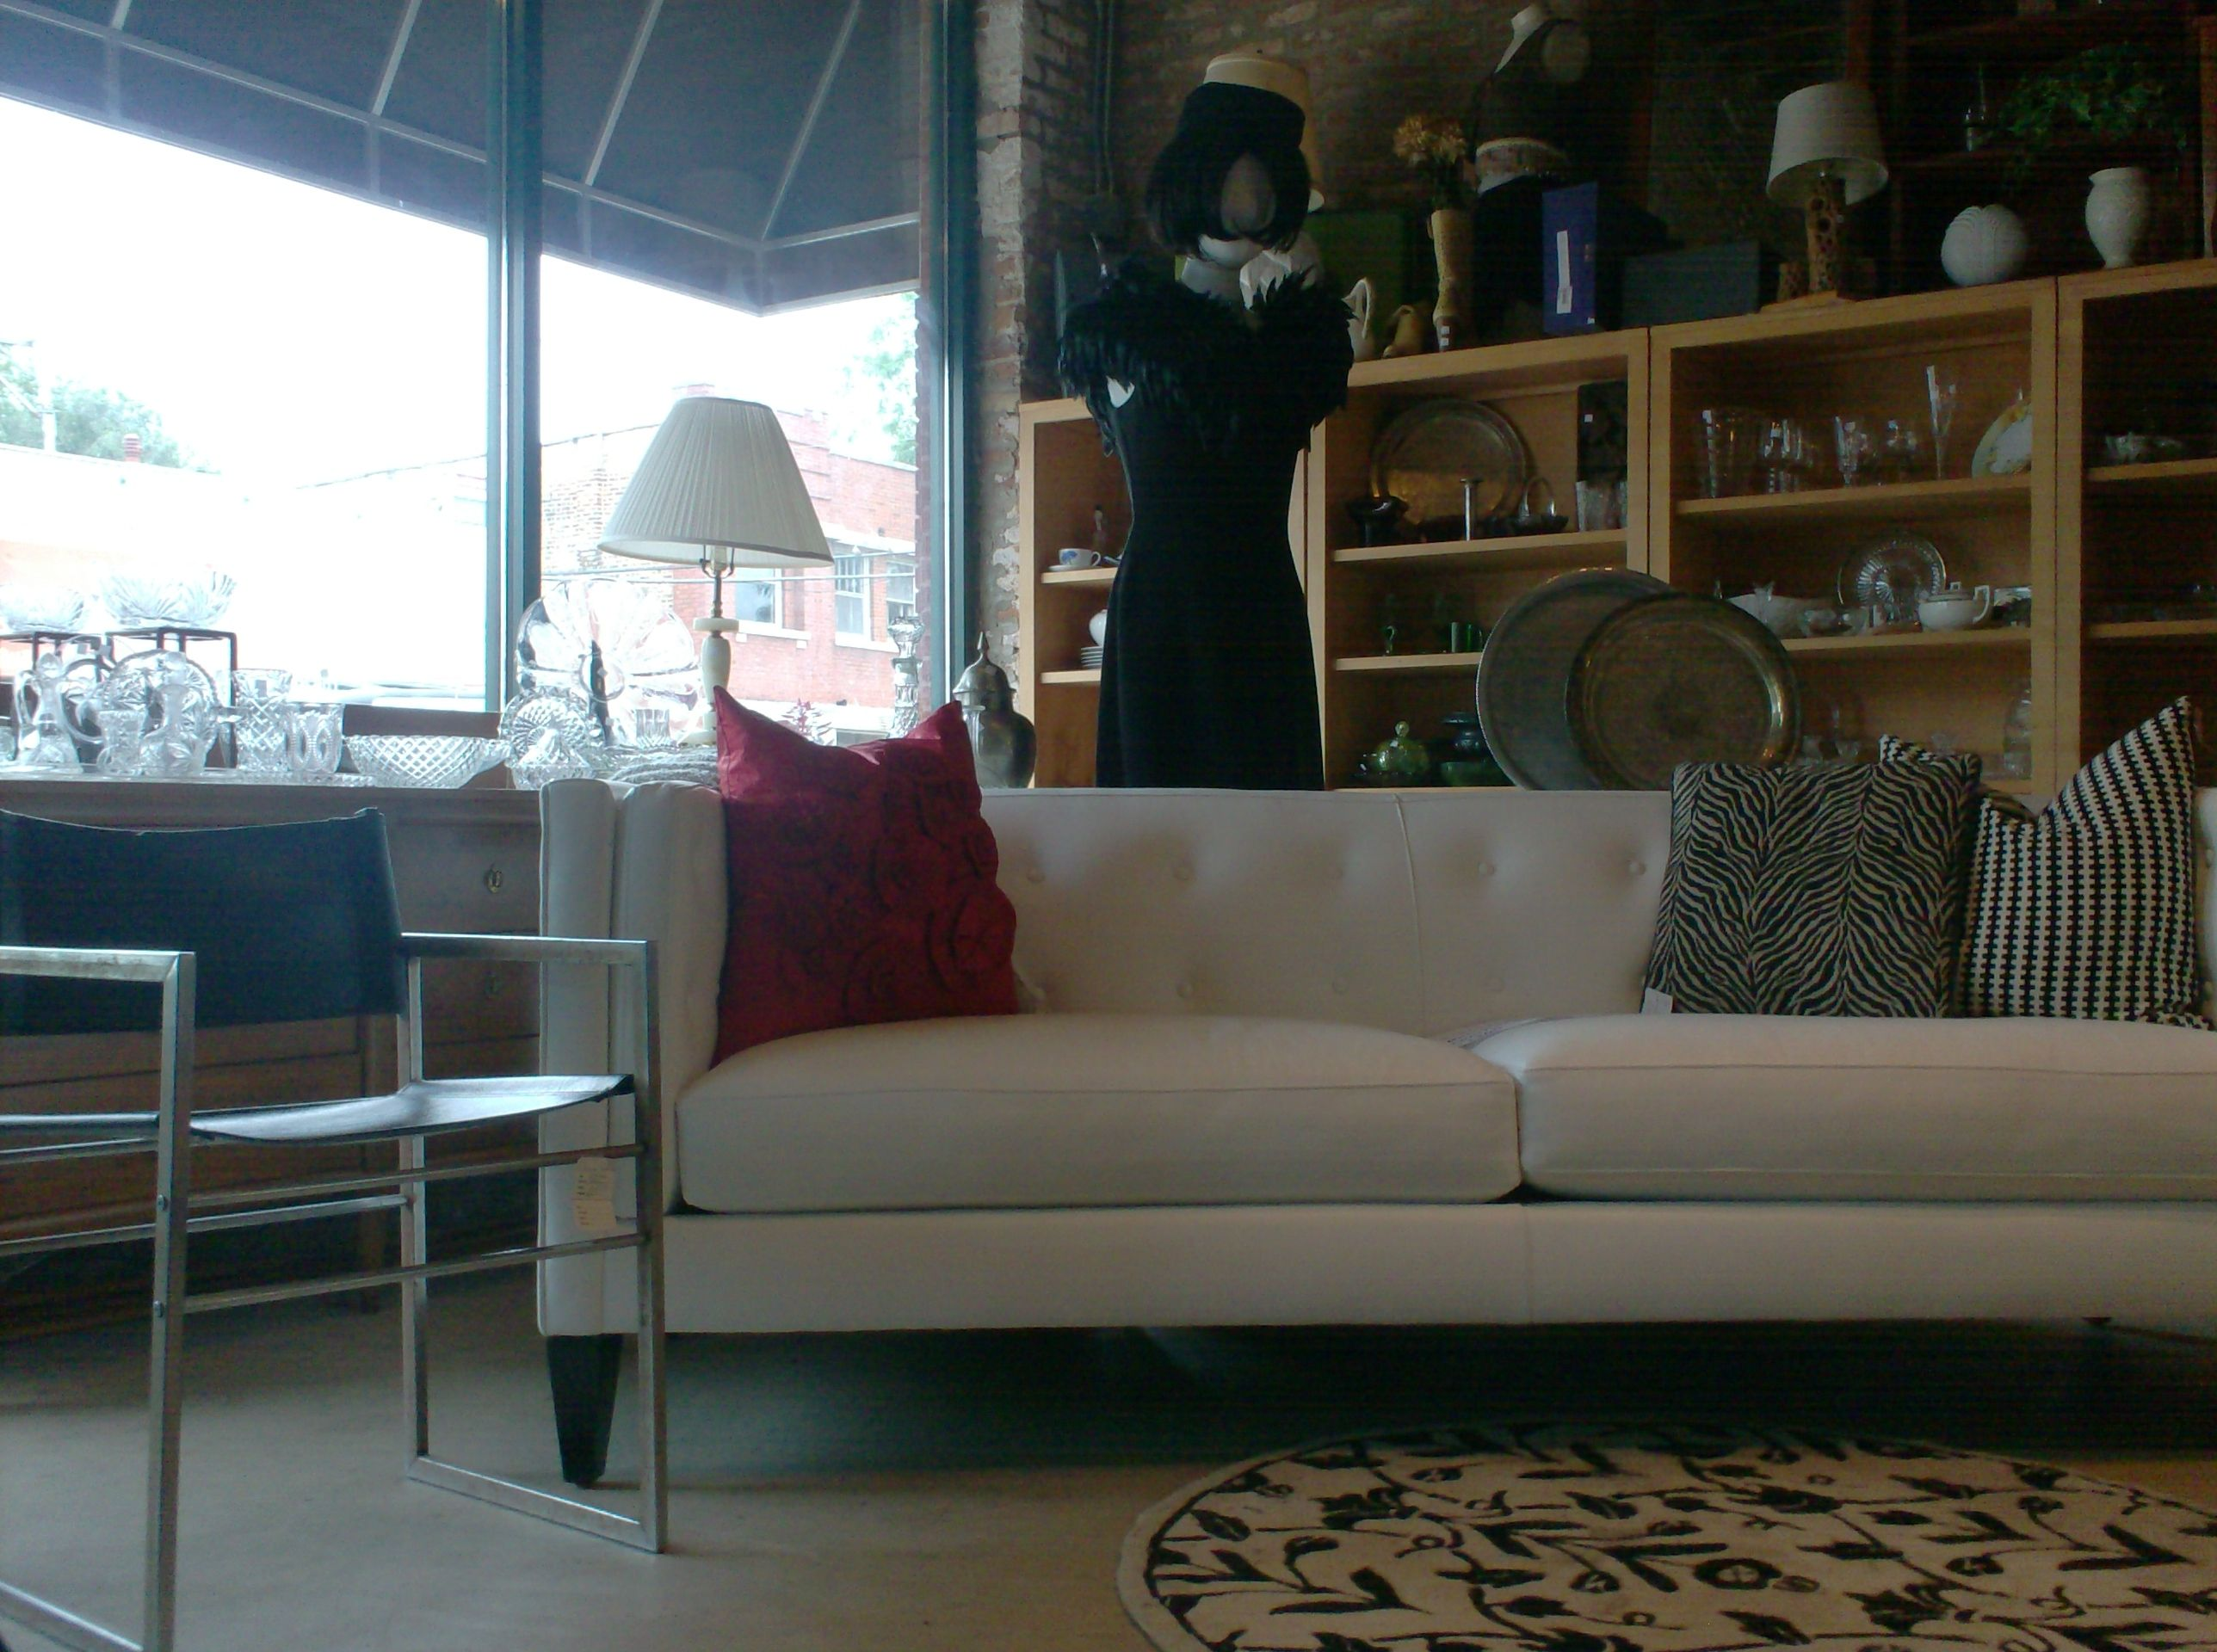 Remarkable Crate And Barrel White Leather Sofa Chris Kole Couture Dress Gmtry Best Dining Table And Chair Ideas Images Gmtryco